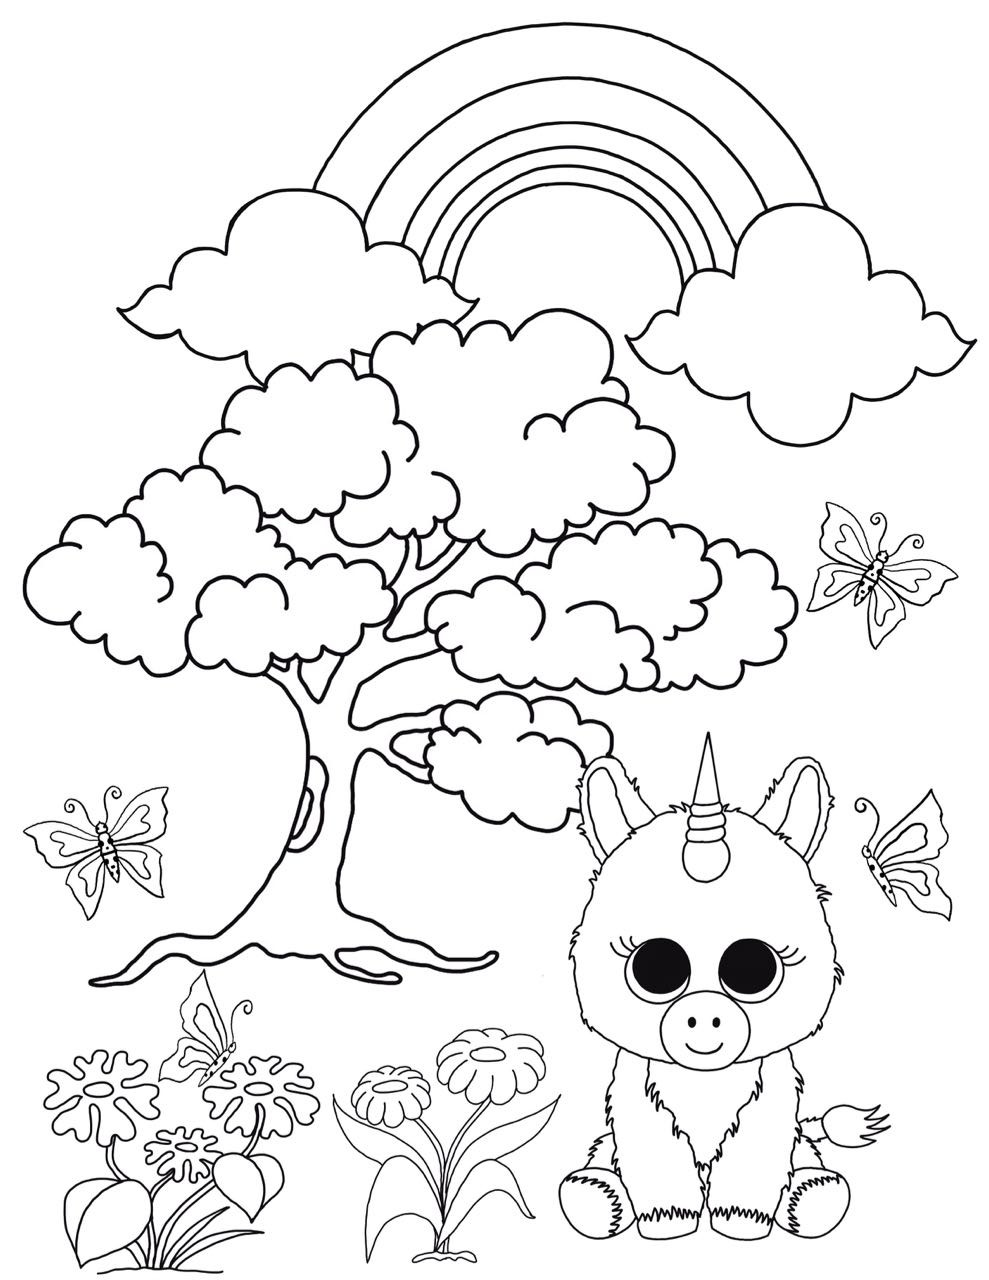 989x1280 Free Beanie Boo Coloring Pages Download Print Cats Dogs And Also